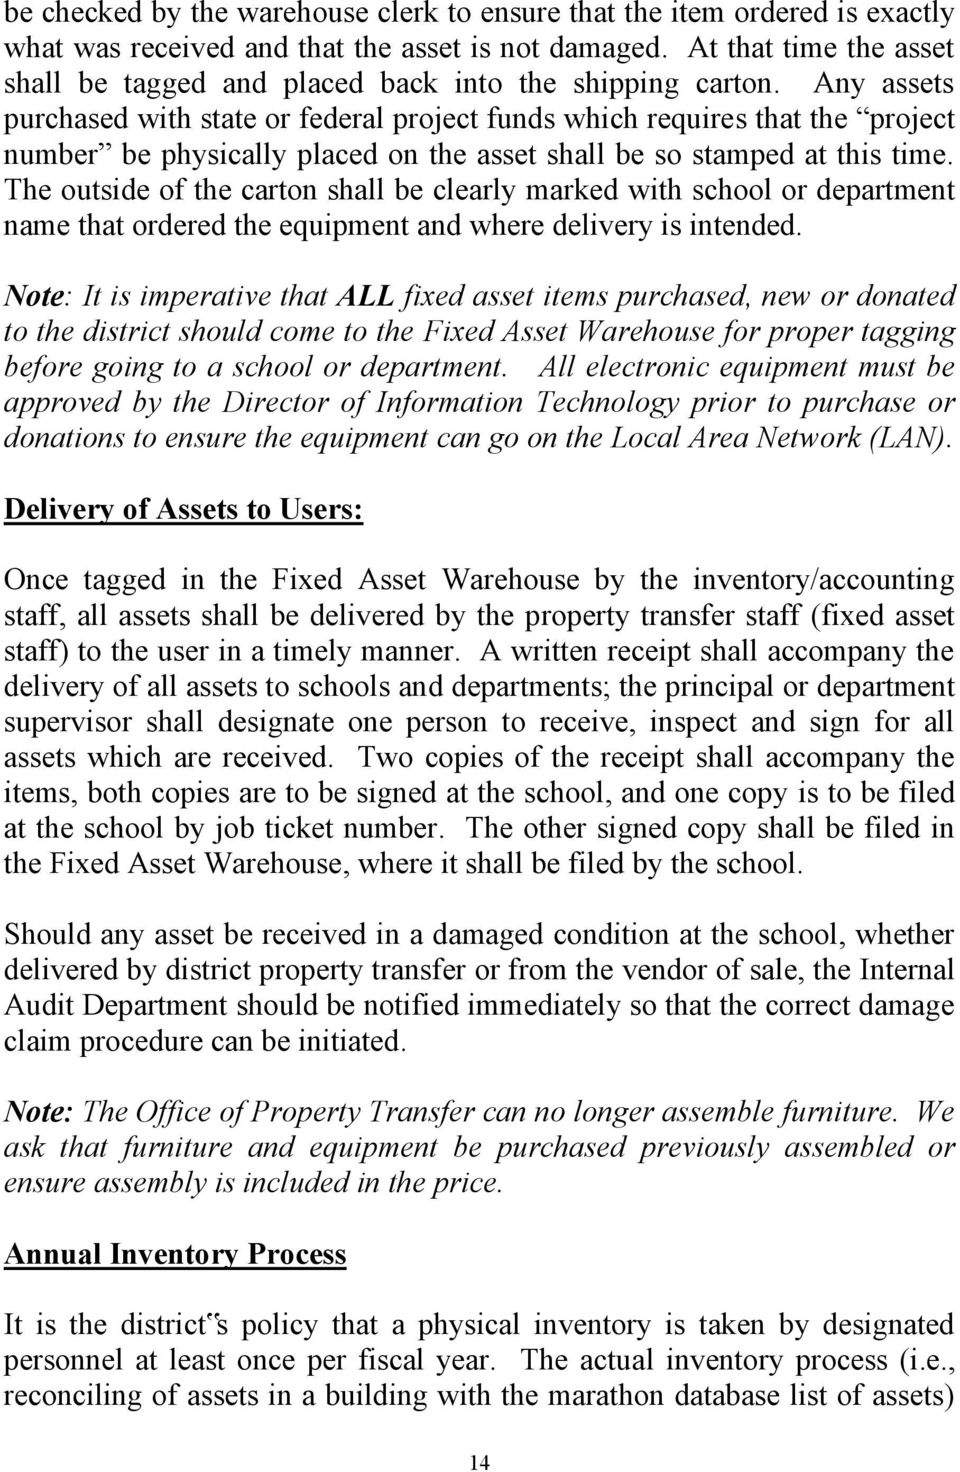 Any assets purchased with state or federal project funds which requires that the project number be physically placed on the asset shall be so stamped at this time.